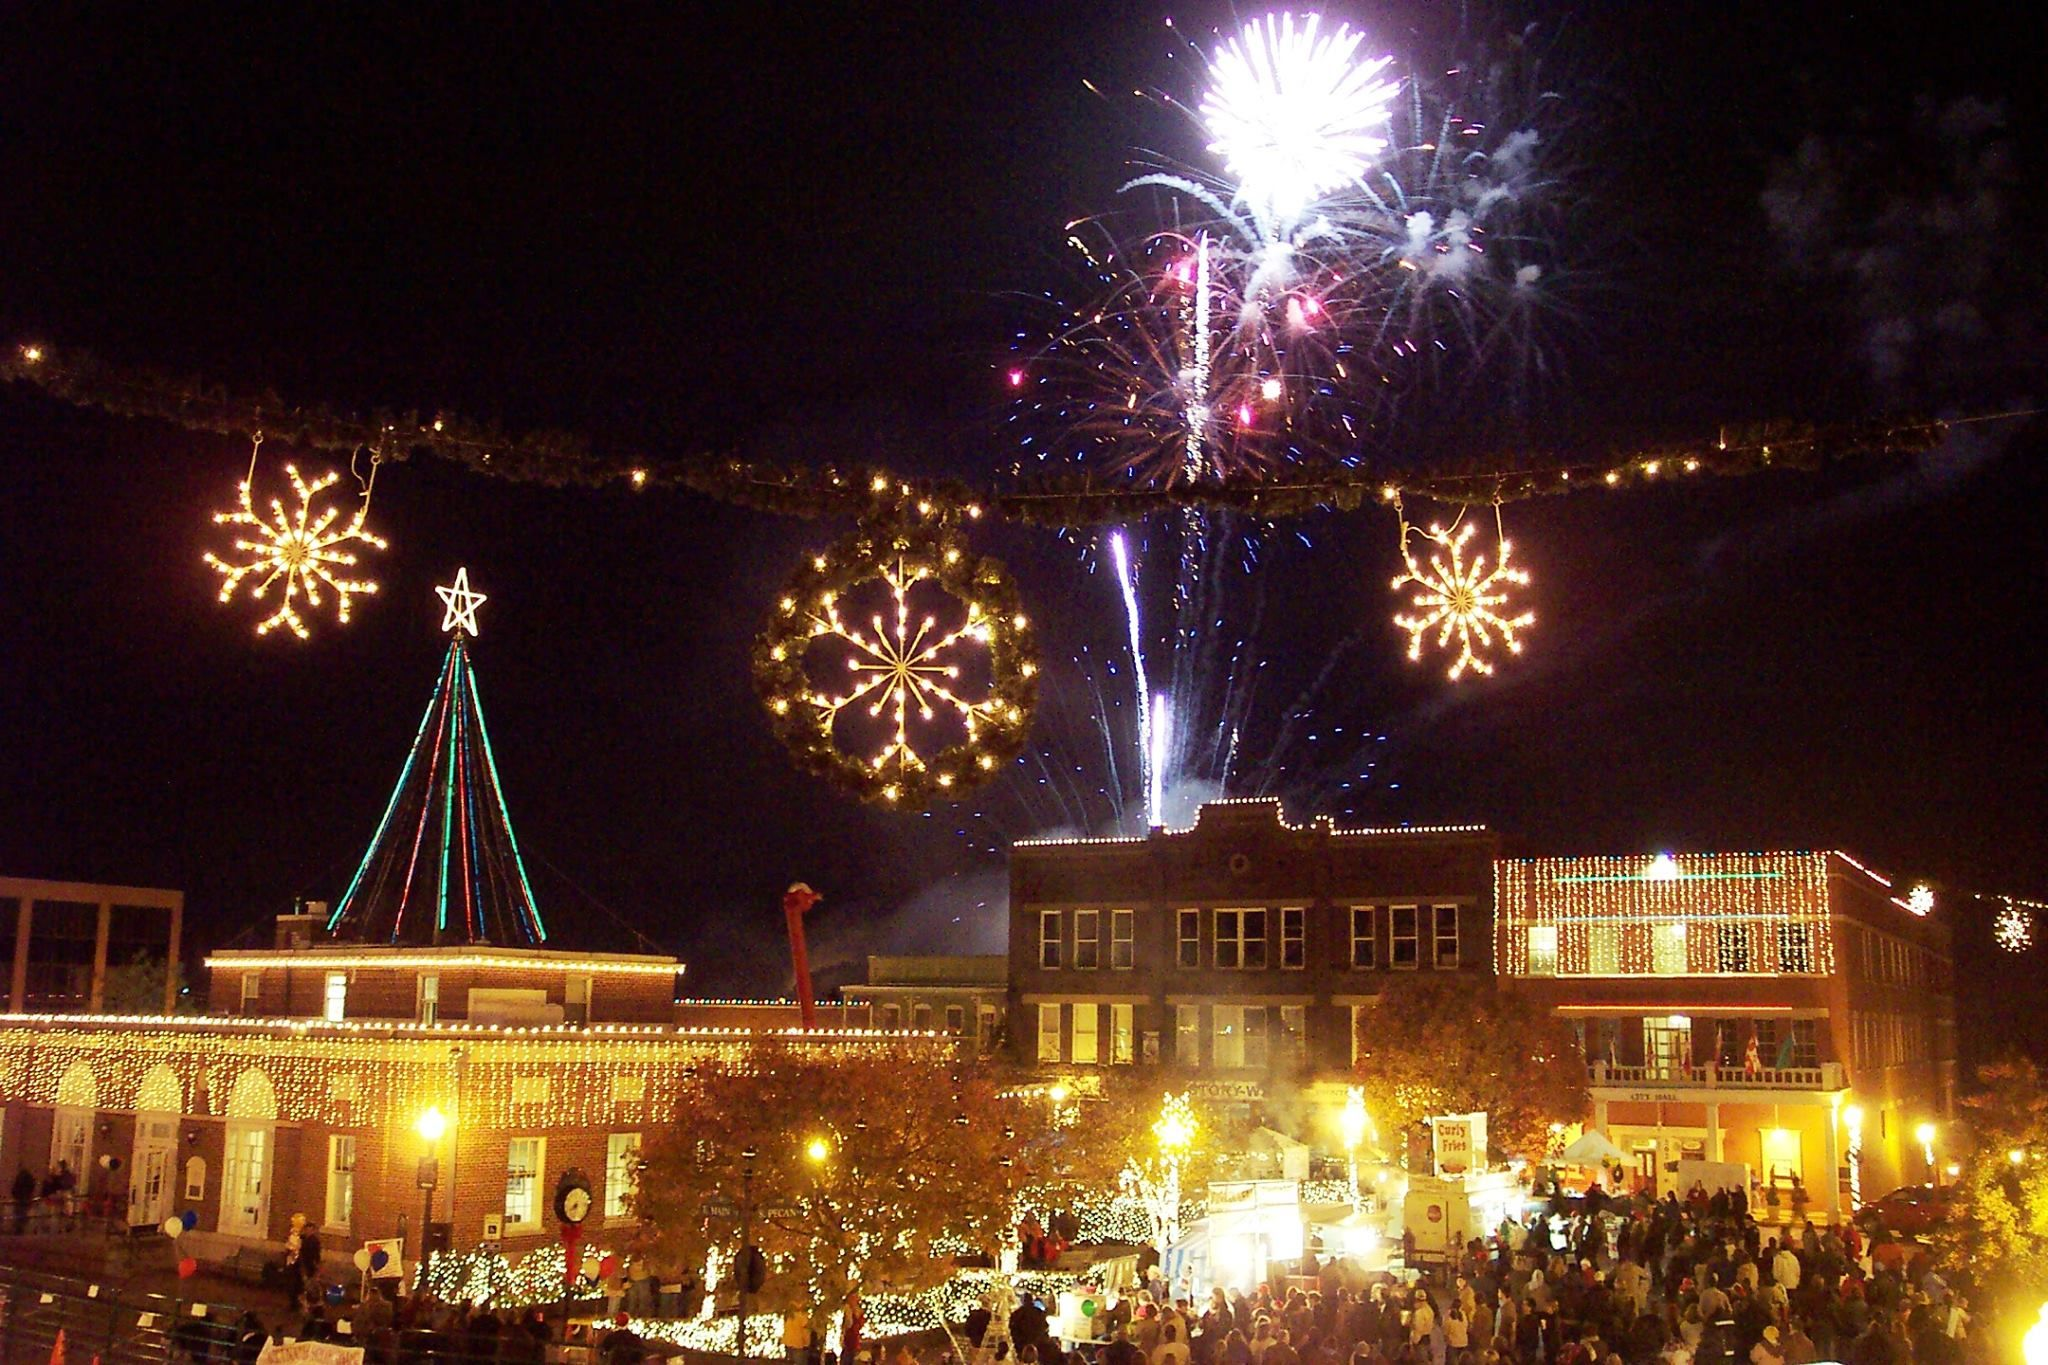 Nine Flags Christmas Festival, Nacogdoches, Texas | Nacogdoches ...